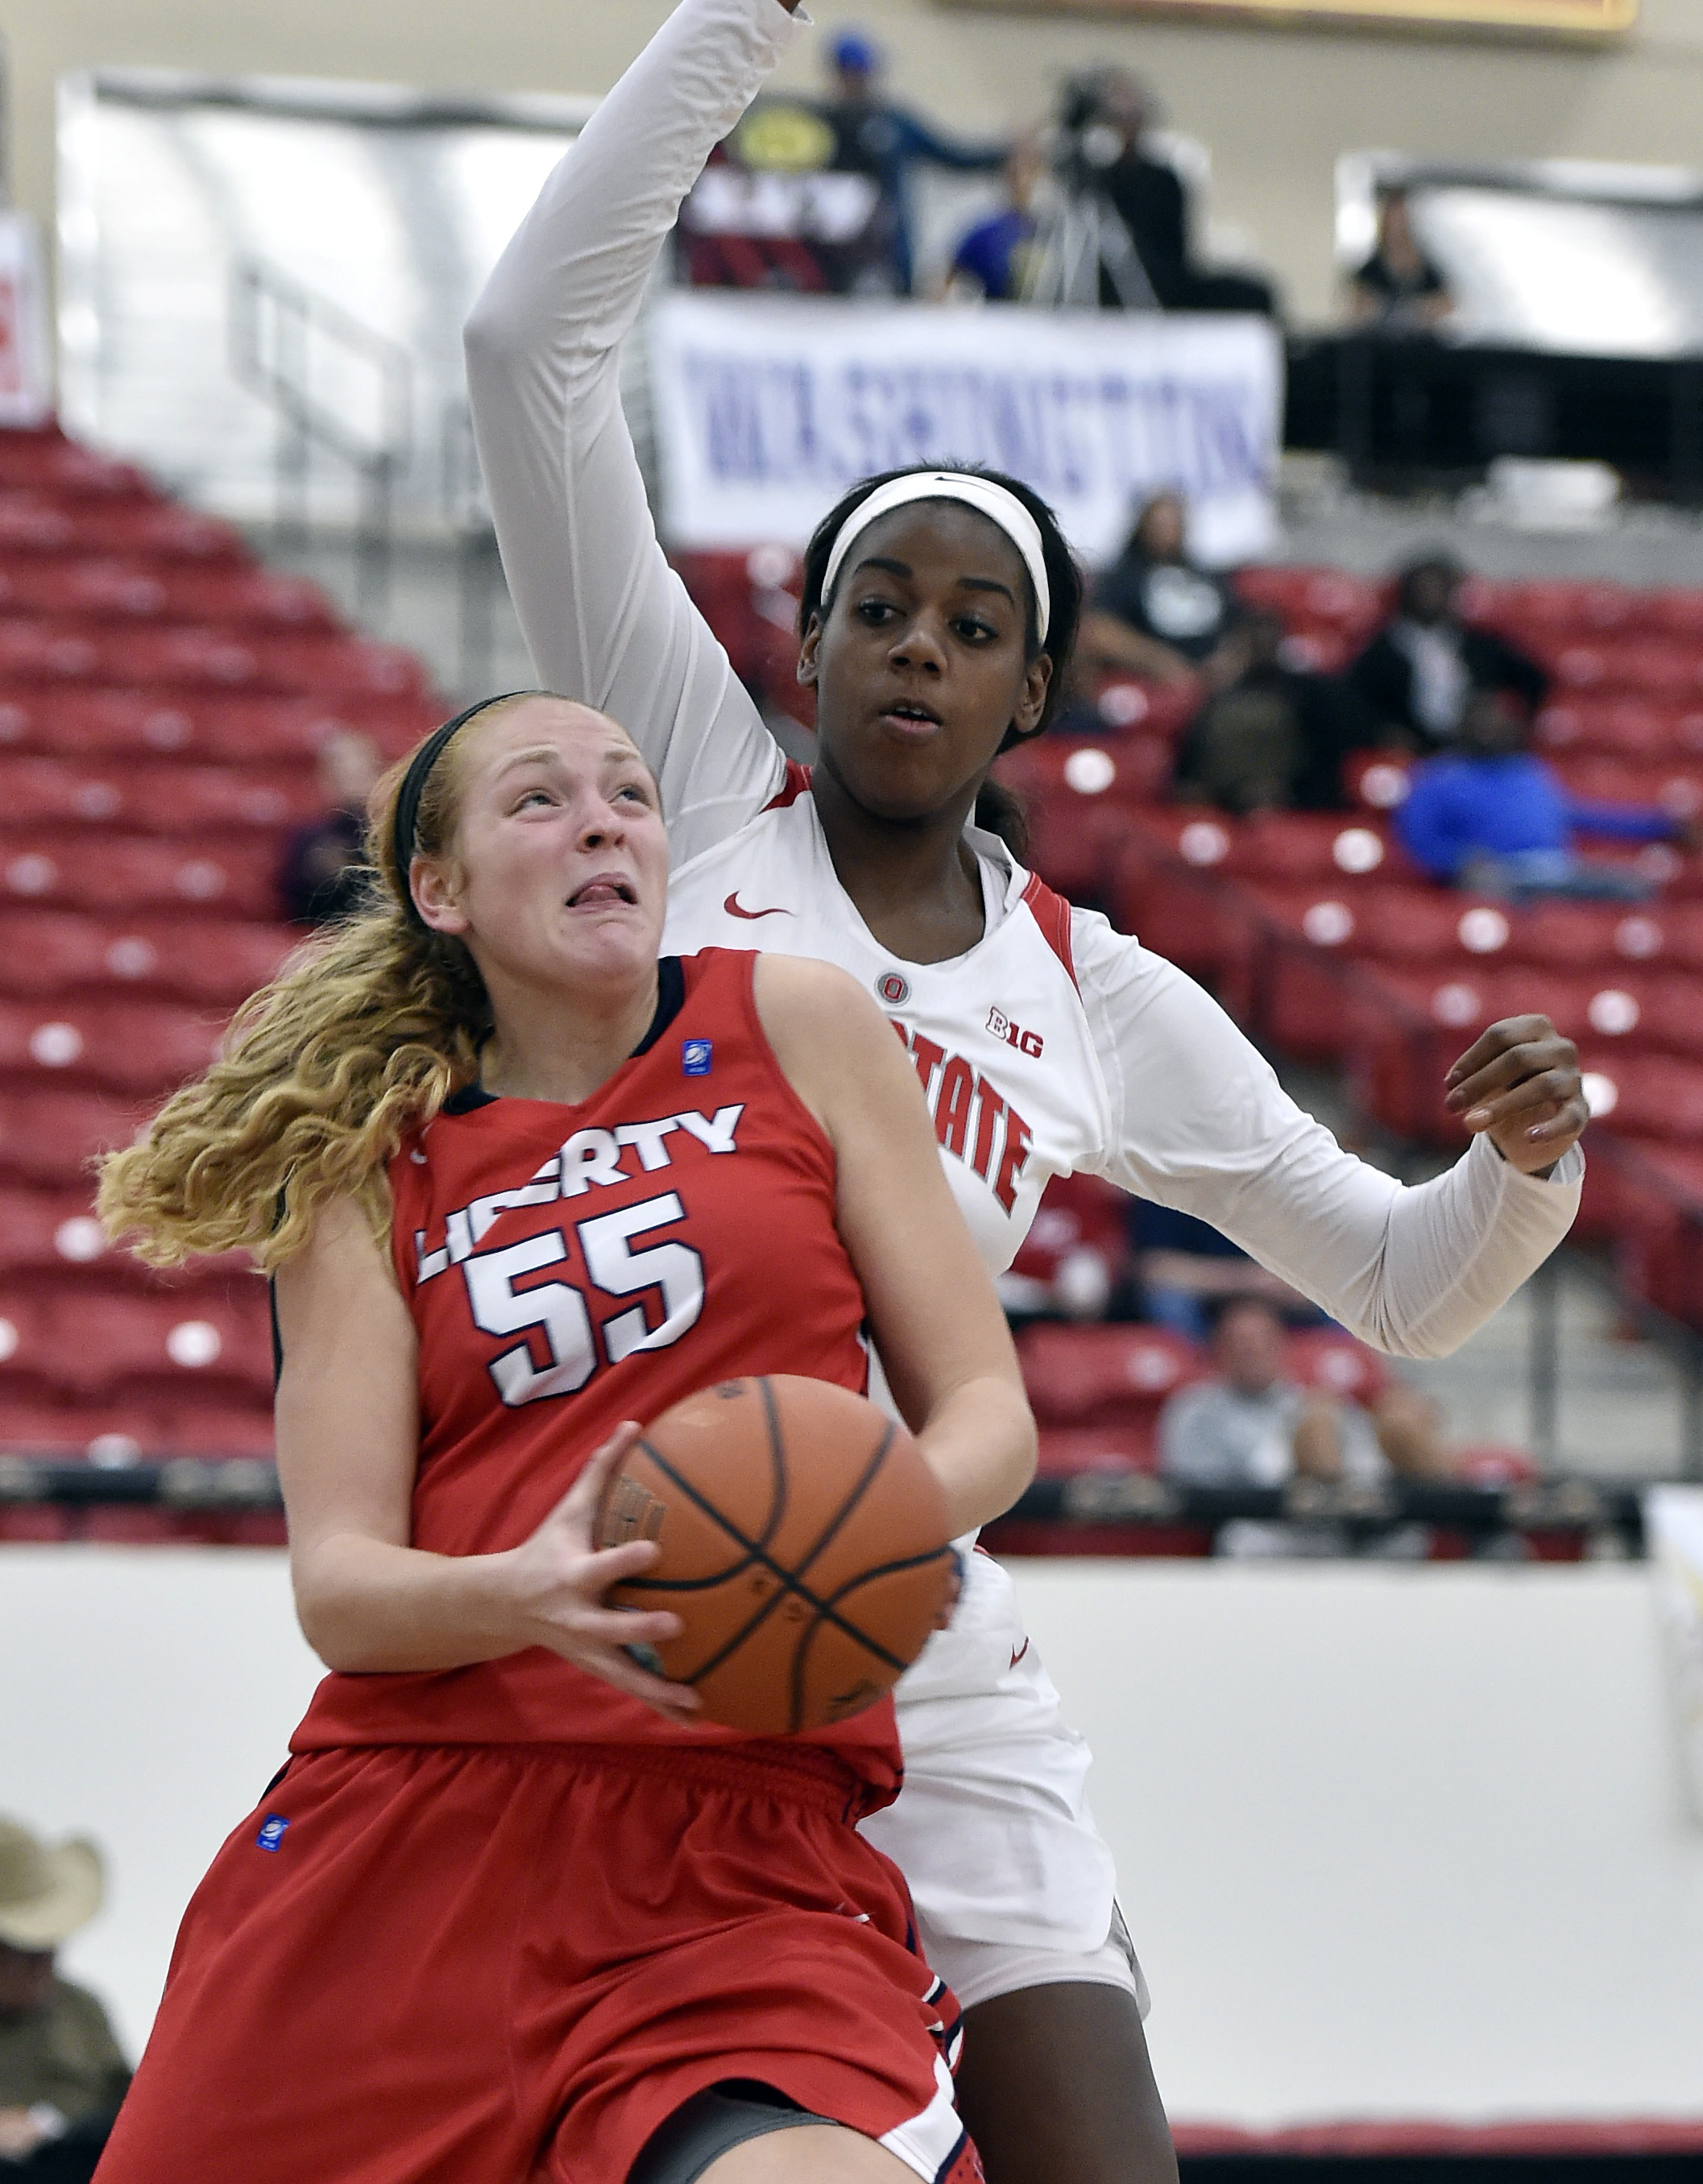 Liberty's Ashley Rininger (55) drives to the basket against Ohio State's Lisa Blair during the second half of an NCAA college basketball game Friday, Nov. 27, 2015, in Las Vegas. Ohio State won 75-65. (AP Photo/David Becker)